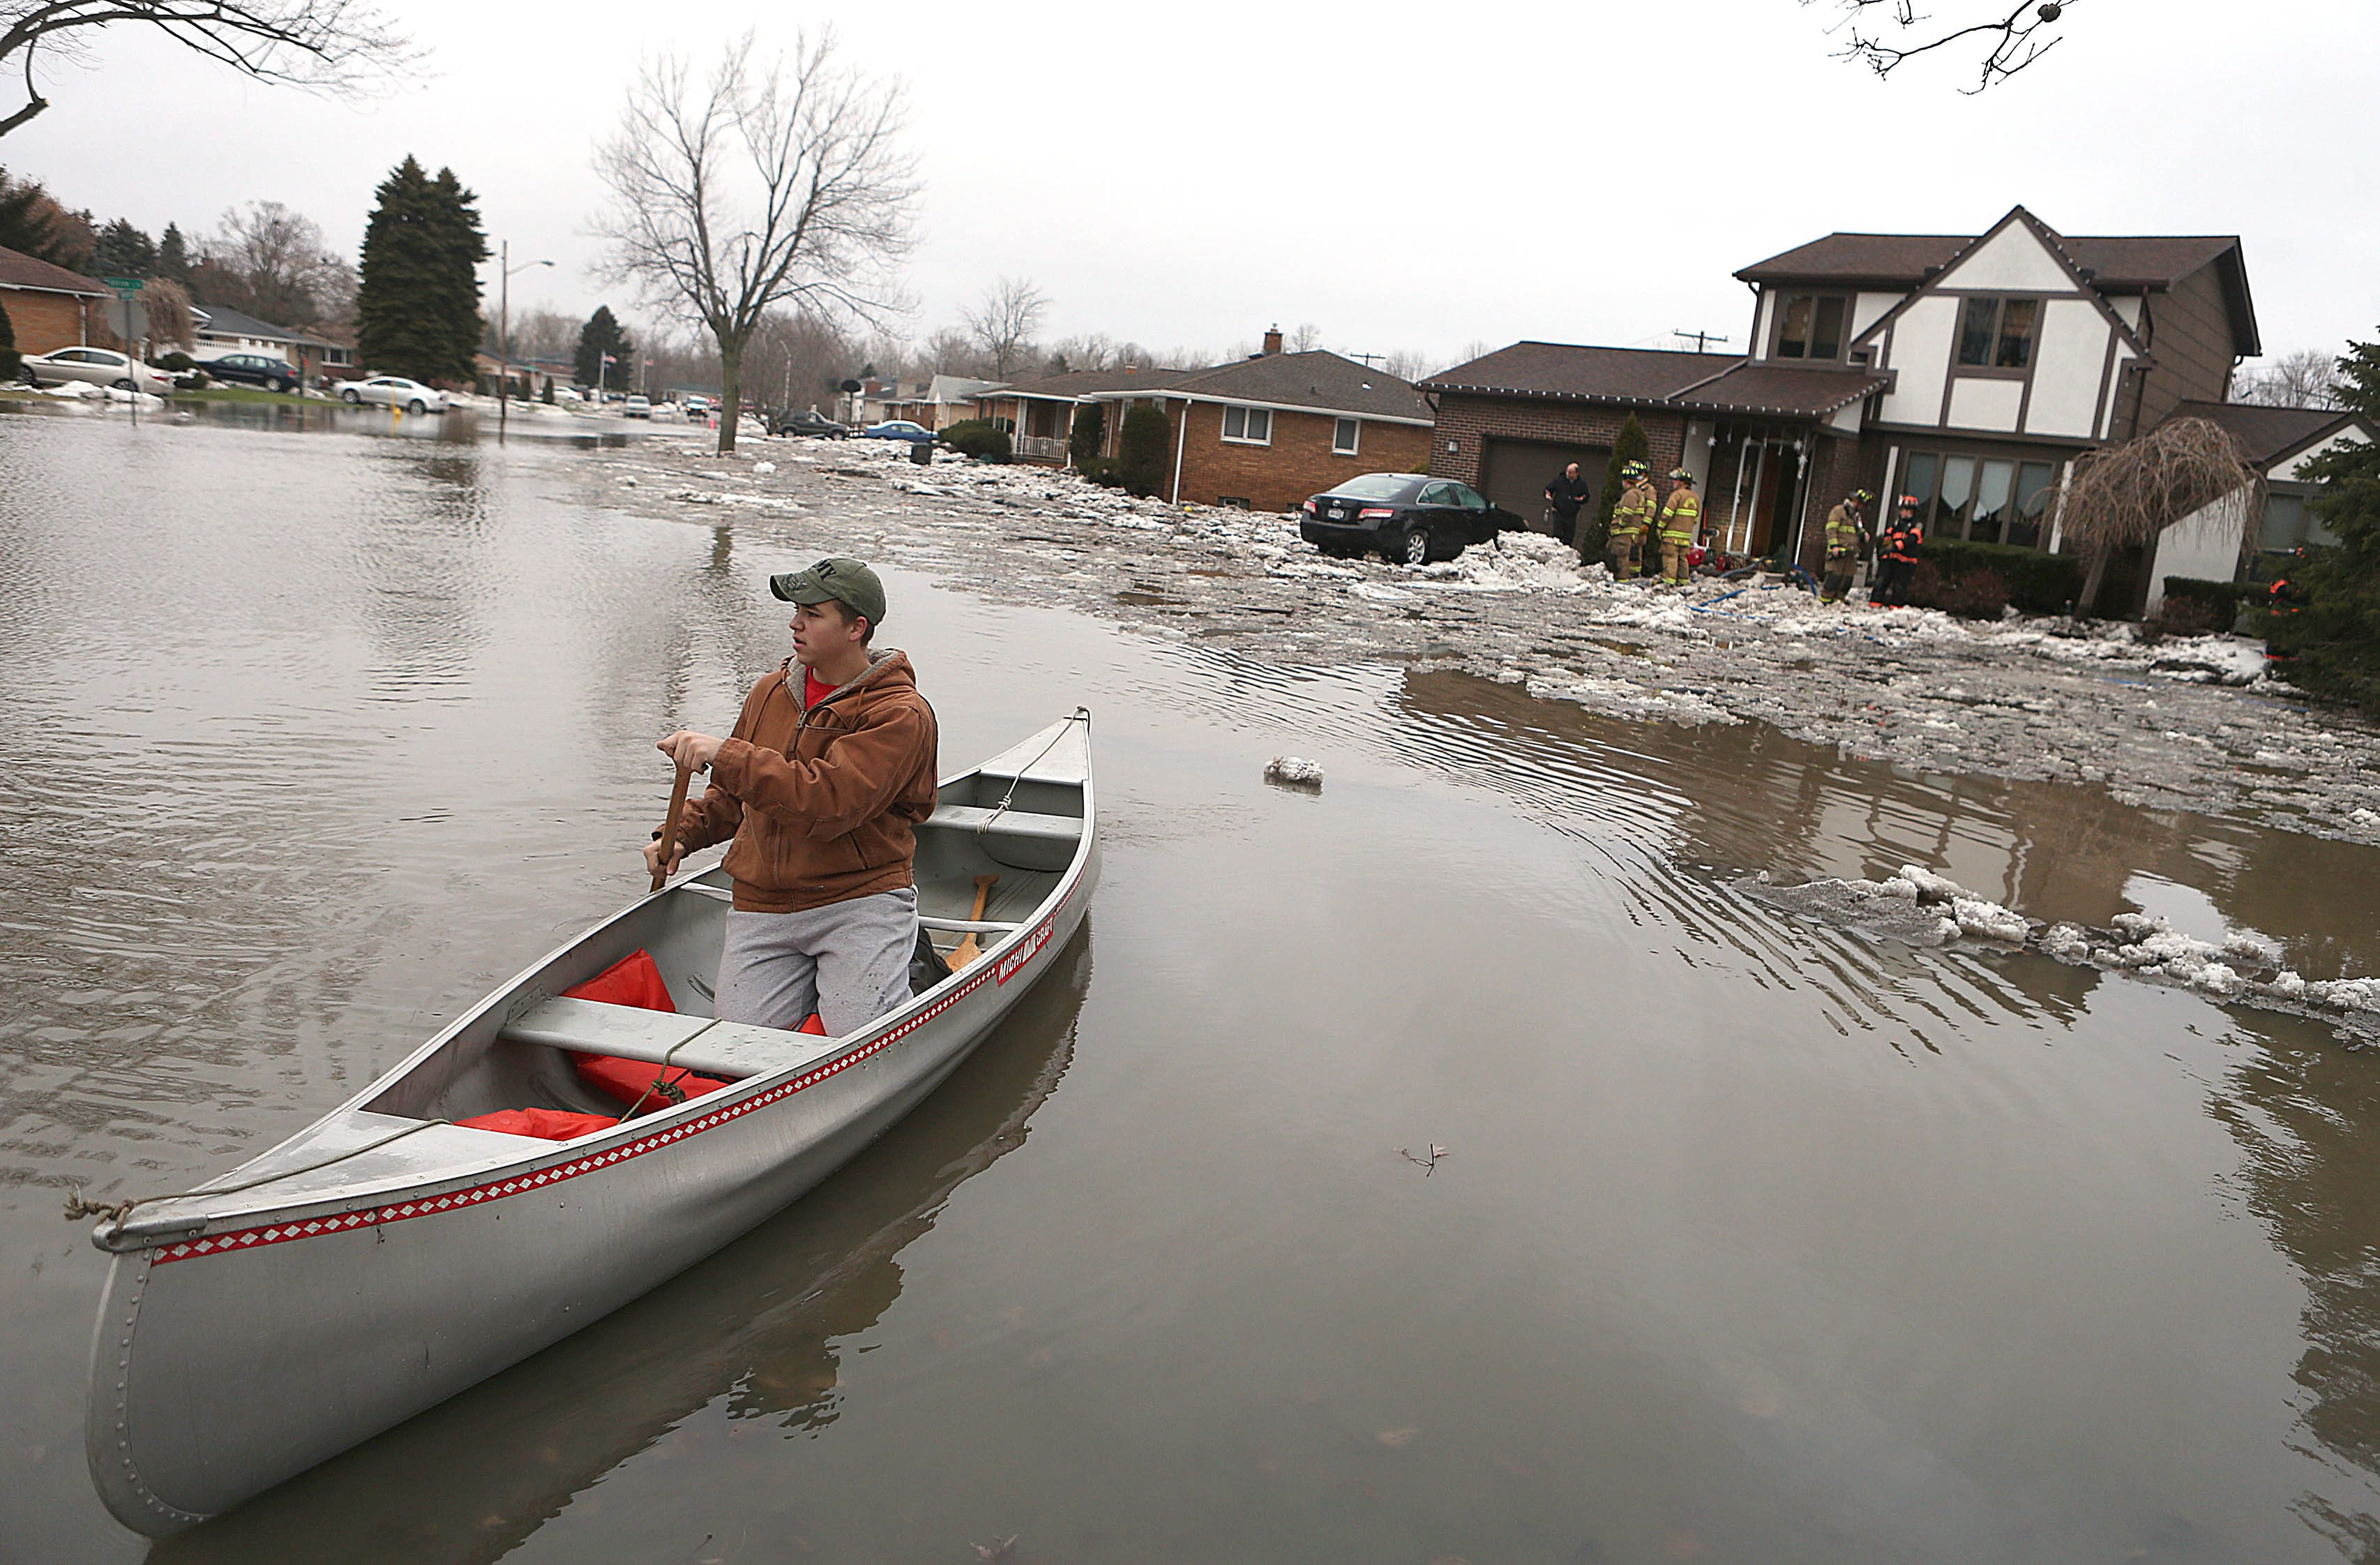 Ben Lang, of Elma, paddles a canoe down Brian Lane in West Seneca during a high water event in January 2014. Flooding devastated neighborhoods near Buffalo Creek including Lexington Green off Mineral Springs. This week's event won't involve ice-jam flooding, however, record-breaking rainfall is forecast on Thursday. (Robert Kirkham/Buffalo News)